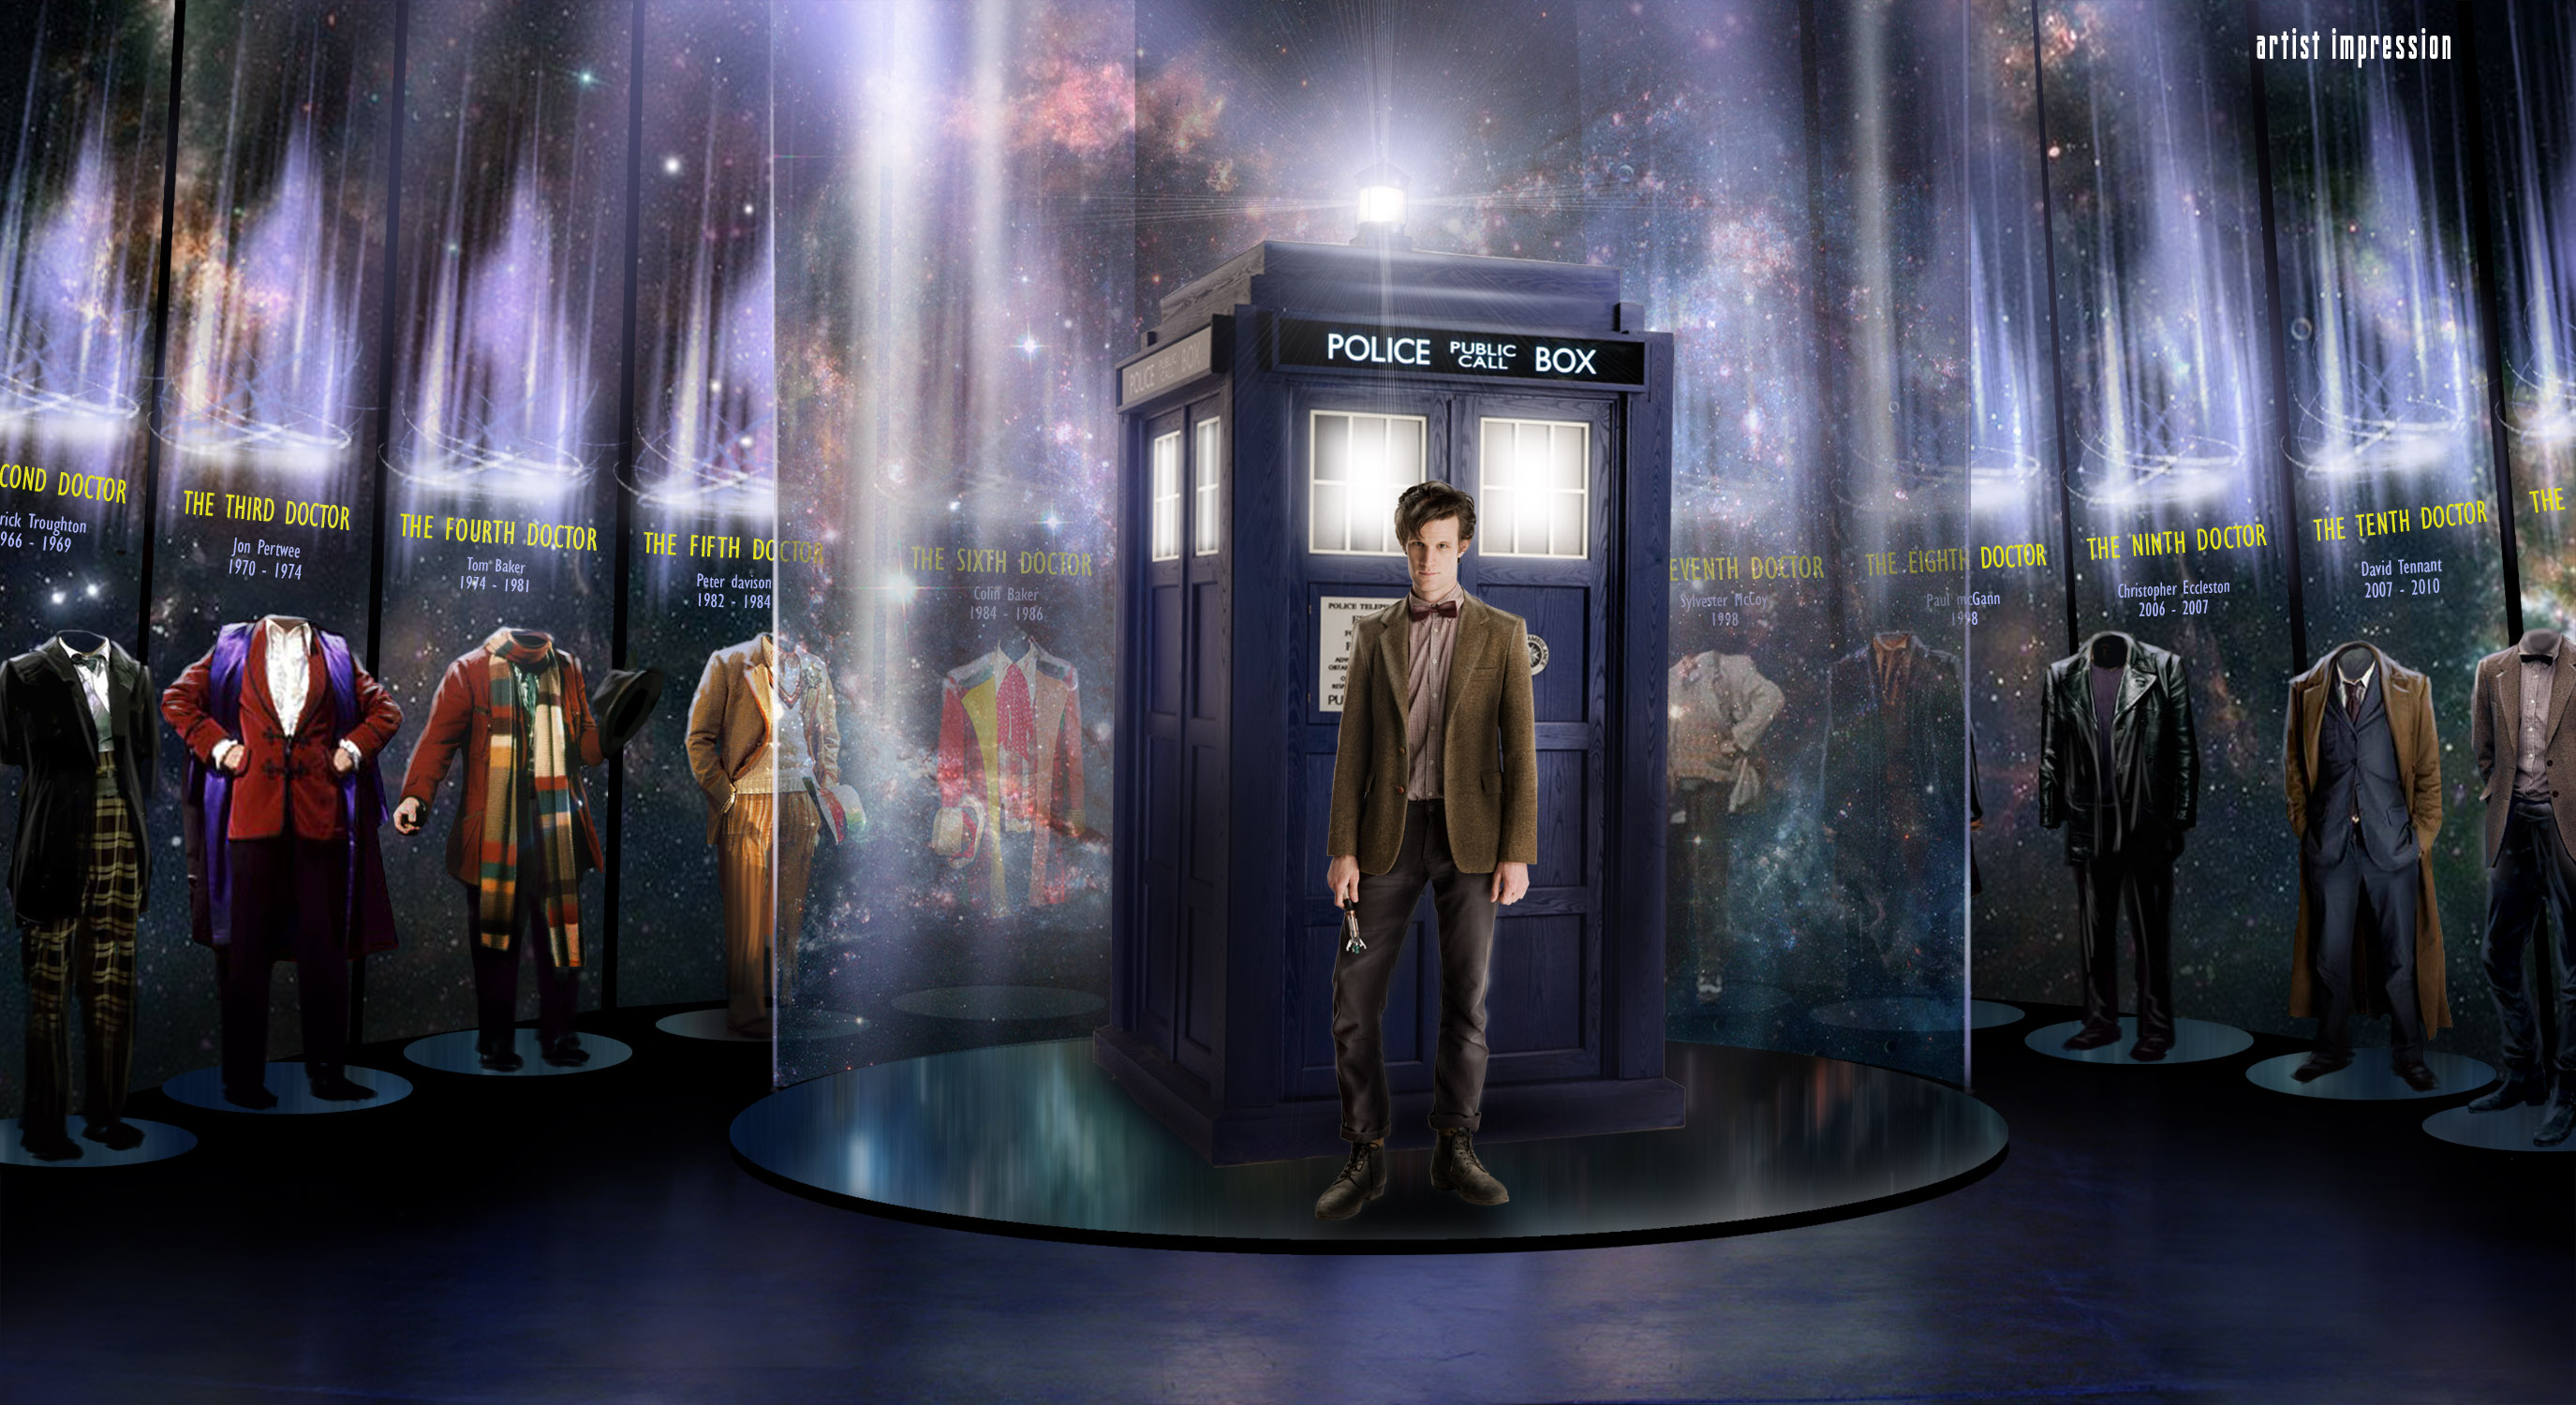 wallpapers of Doctor Who You are downloading Doctor Who wallpaper 27 2750x1500